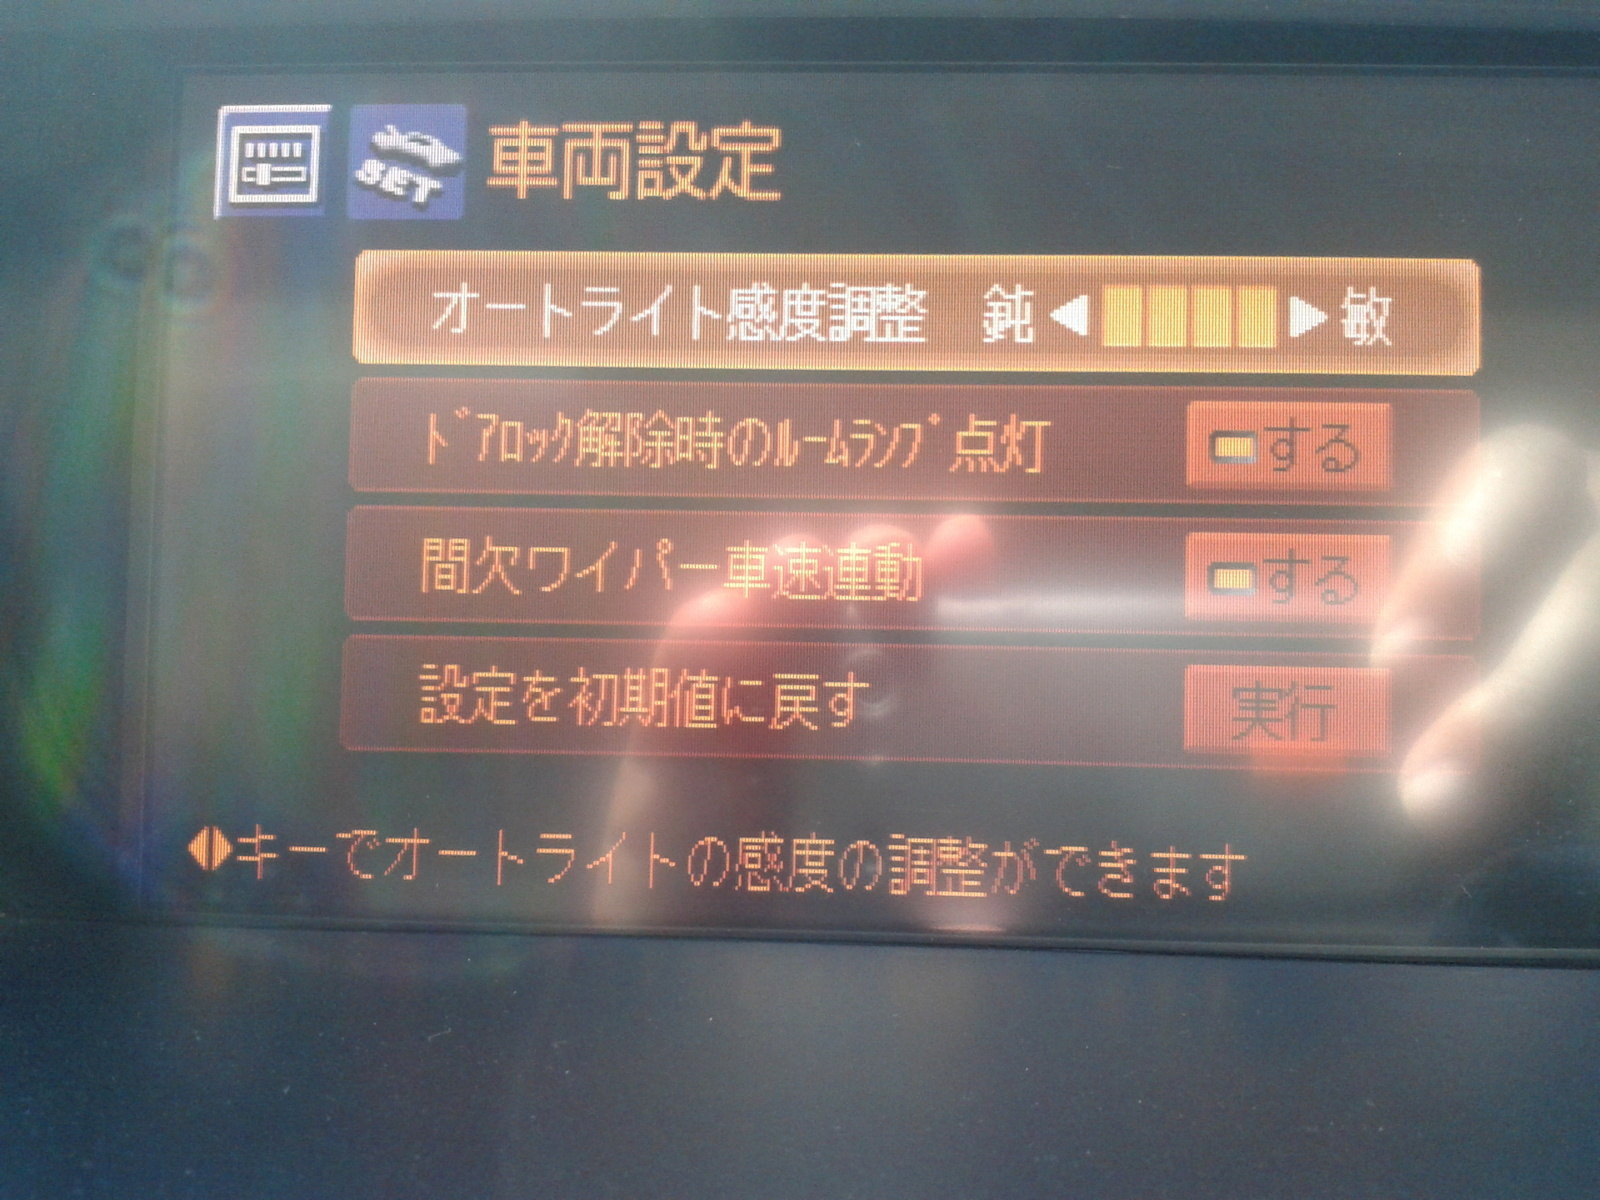 I bought a nissan teana 230jk 2004 model but I can't understand the symbols  on stereo. Please help me with an english manual for stereo operation